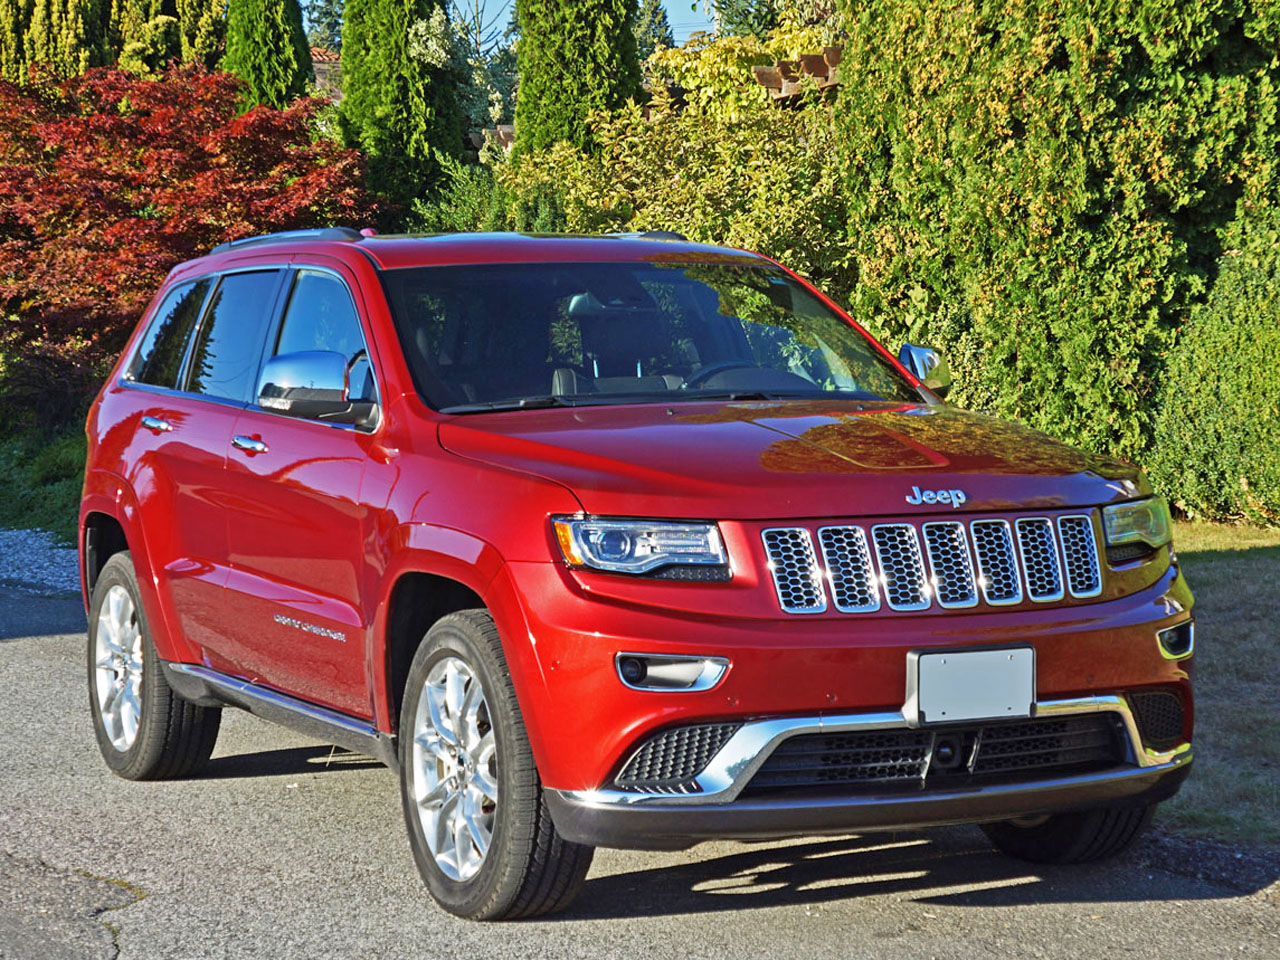 2015 jeep grand cherokee summit ecodiesel 4x4 road test review carcostcanada. Black Bedroom Furniture Sets. Home Design Ideas